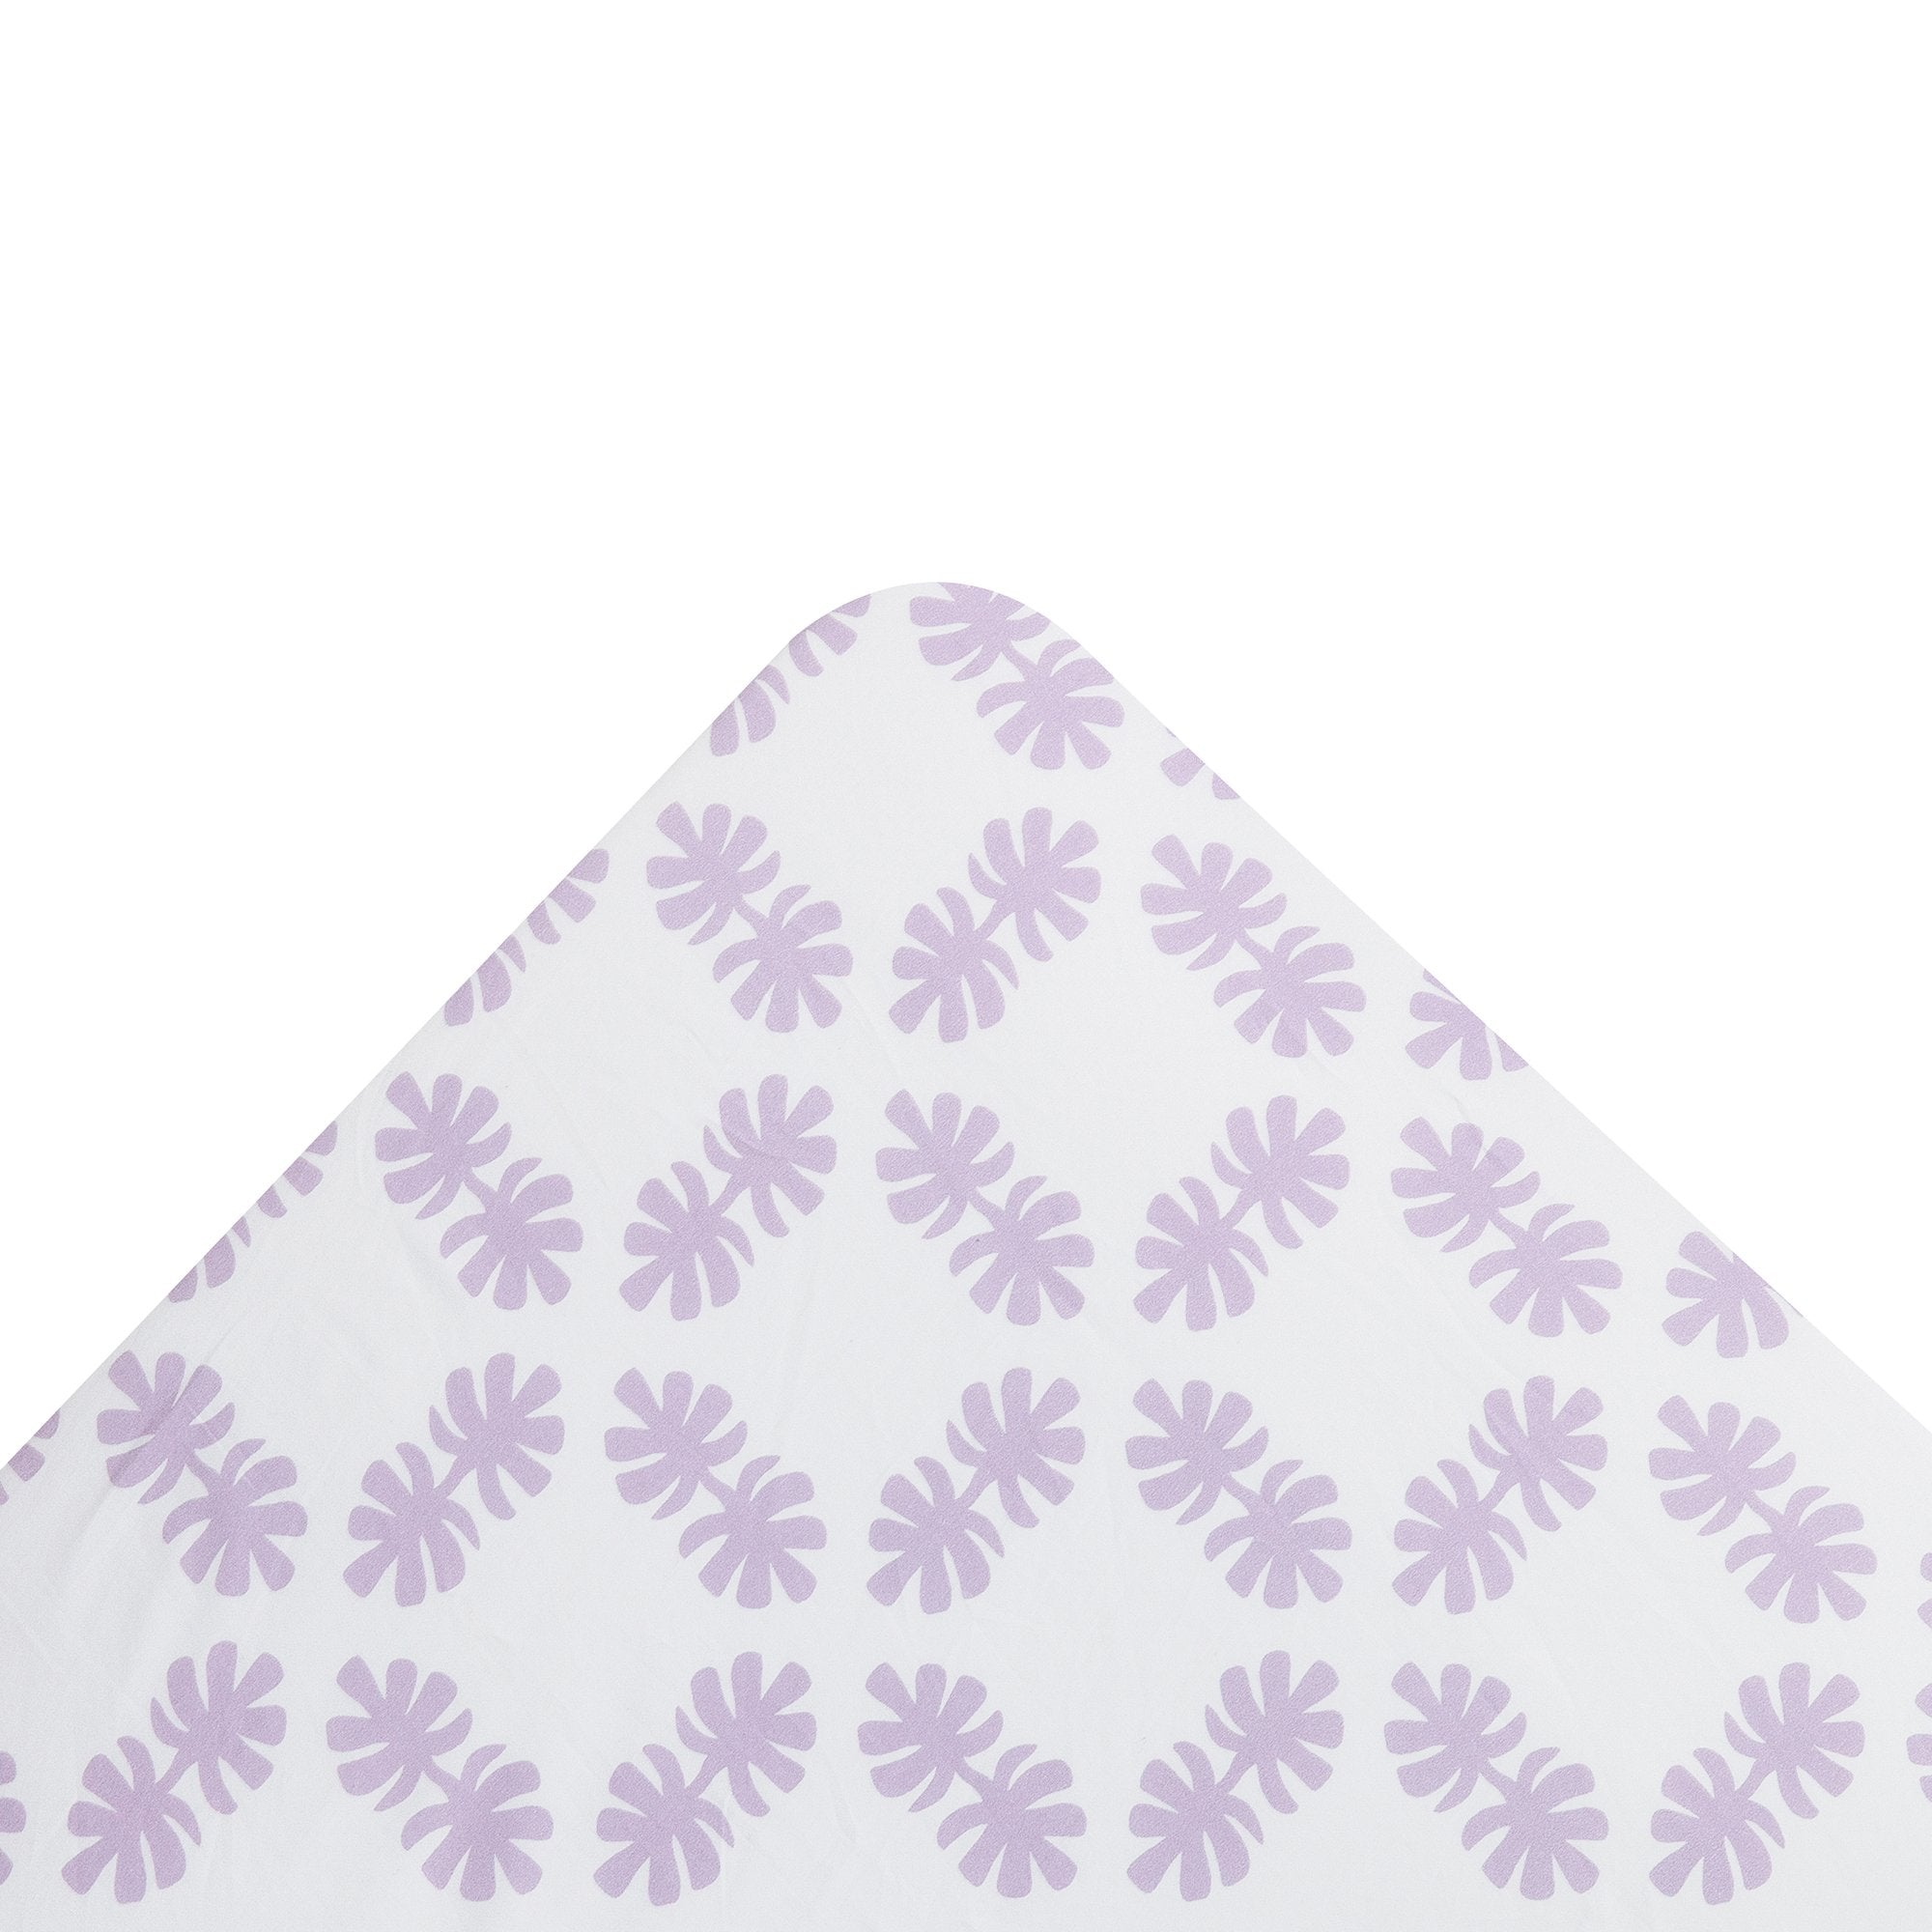 Kikau's Lovely Lilac Coconut Palm kids fitted sheet on white background